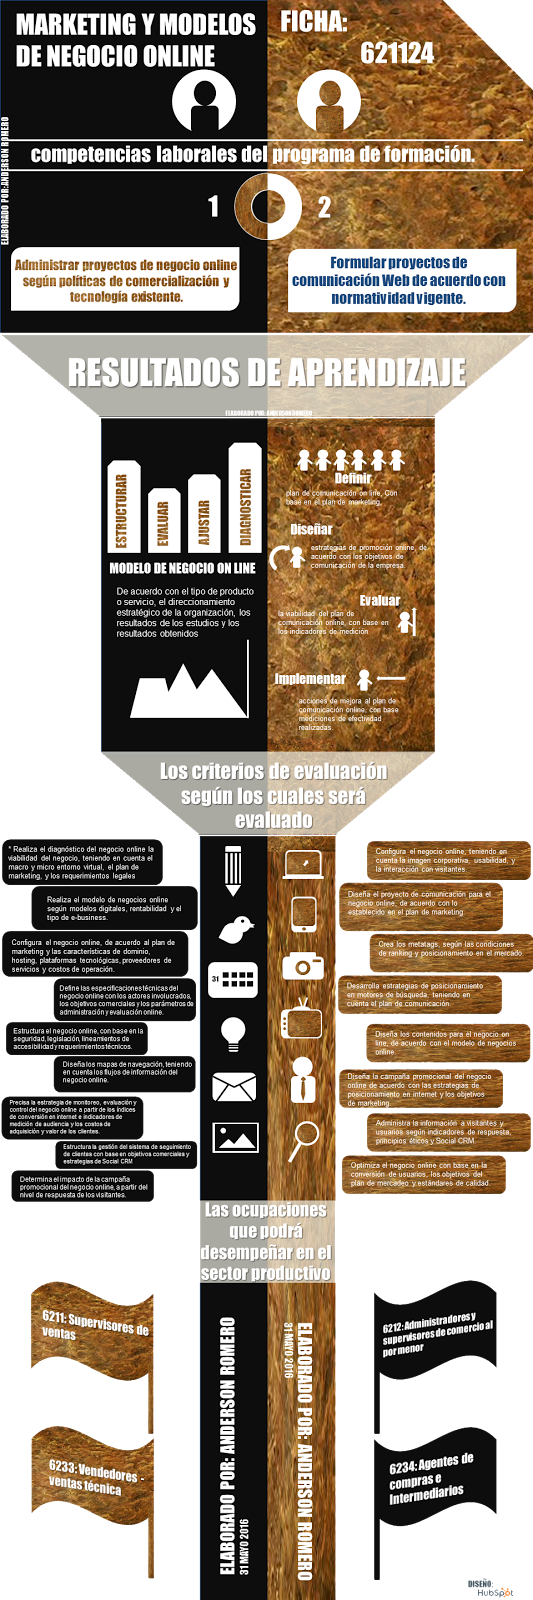 Infografia Marketing y Modelos de Negocio On line